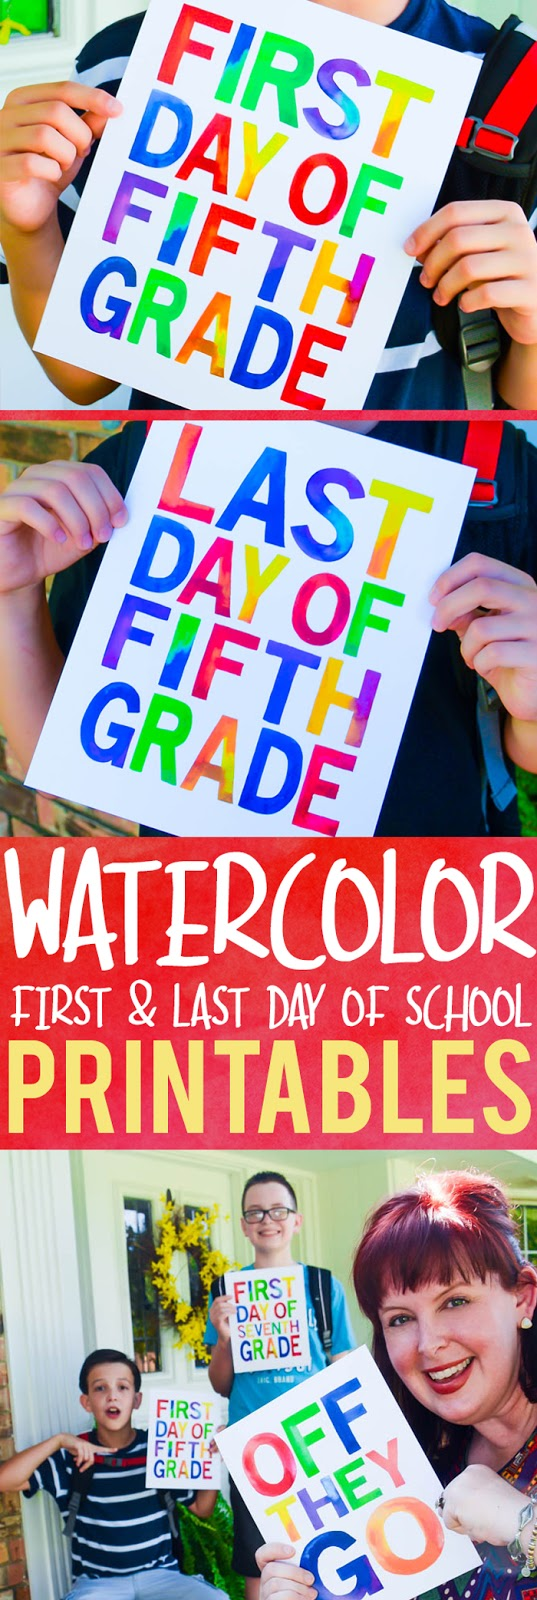 First and last day of school watercolor printables...with FUN bonus printables for parents and guardians! Entire pack includes grades 1-12, preschool, pre-k, and kindergarten.